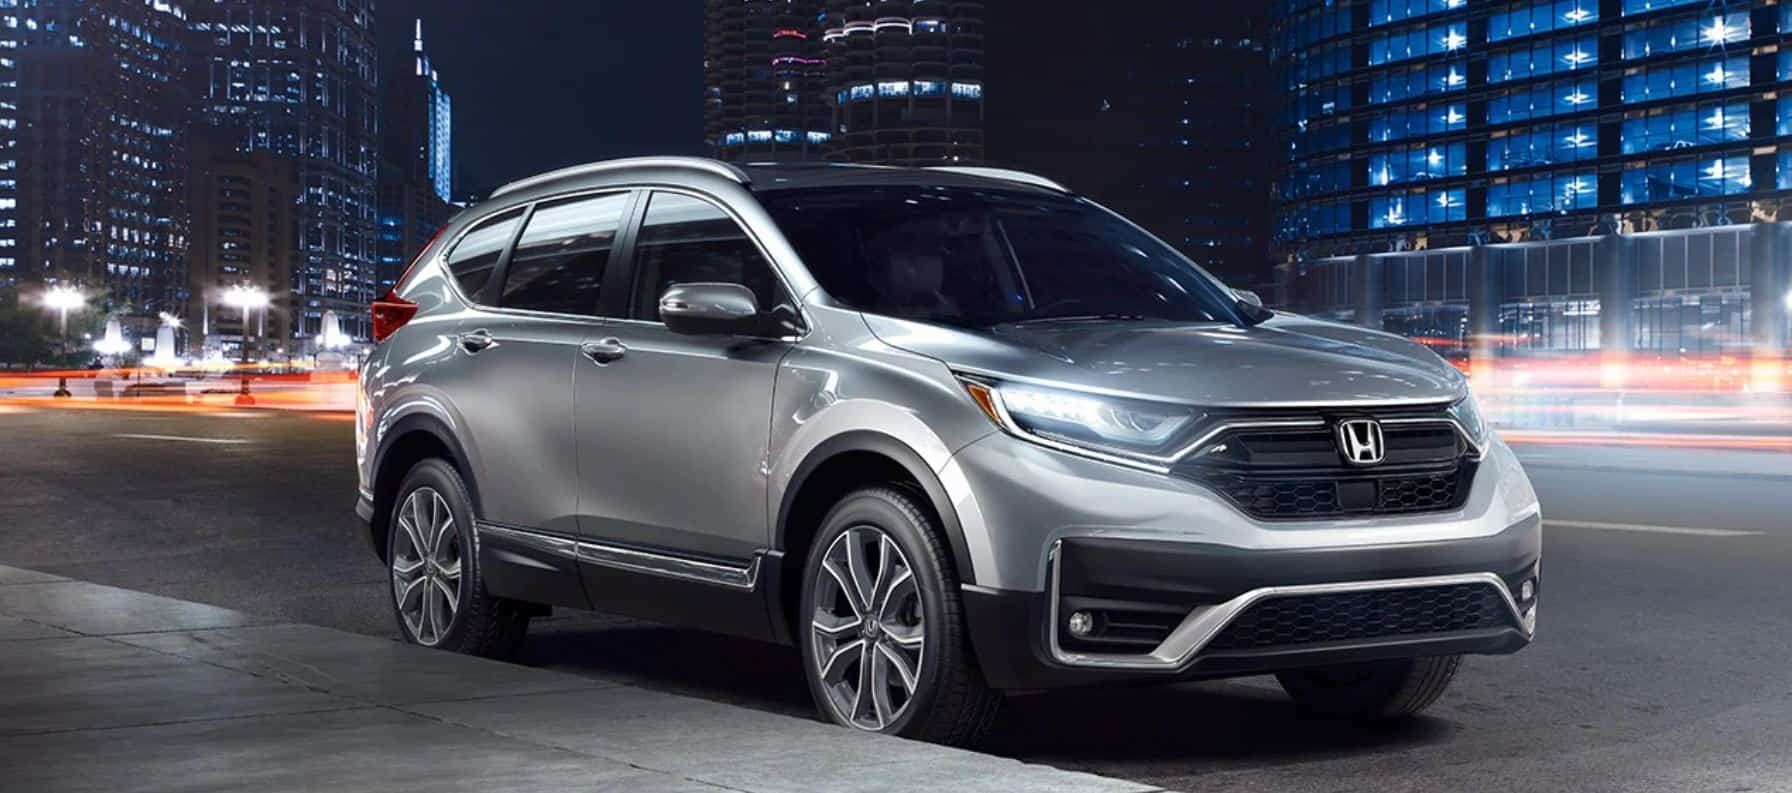 Learn about the 2020 Honda CR-V near Macomb IL